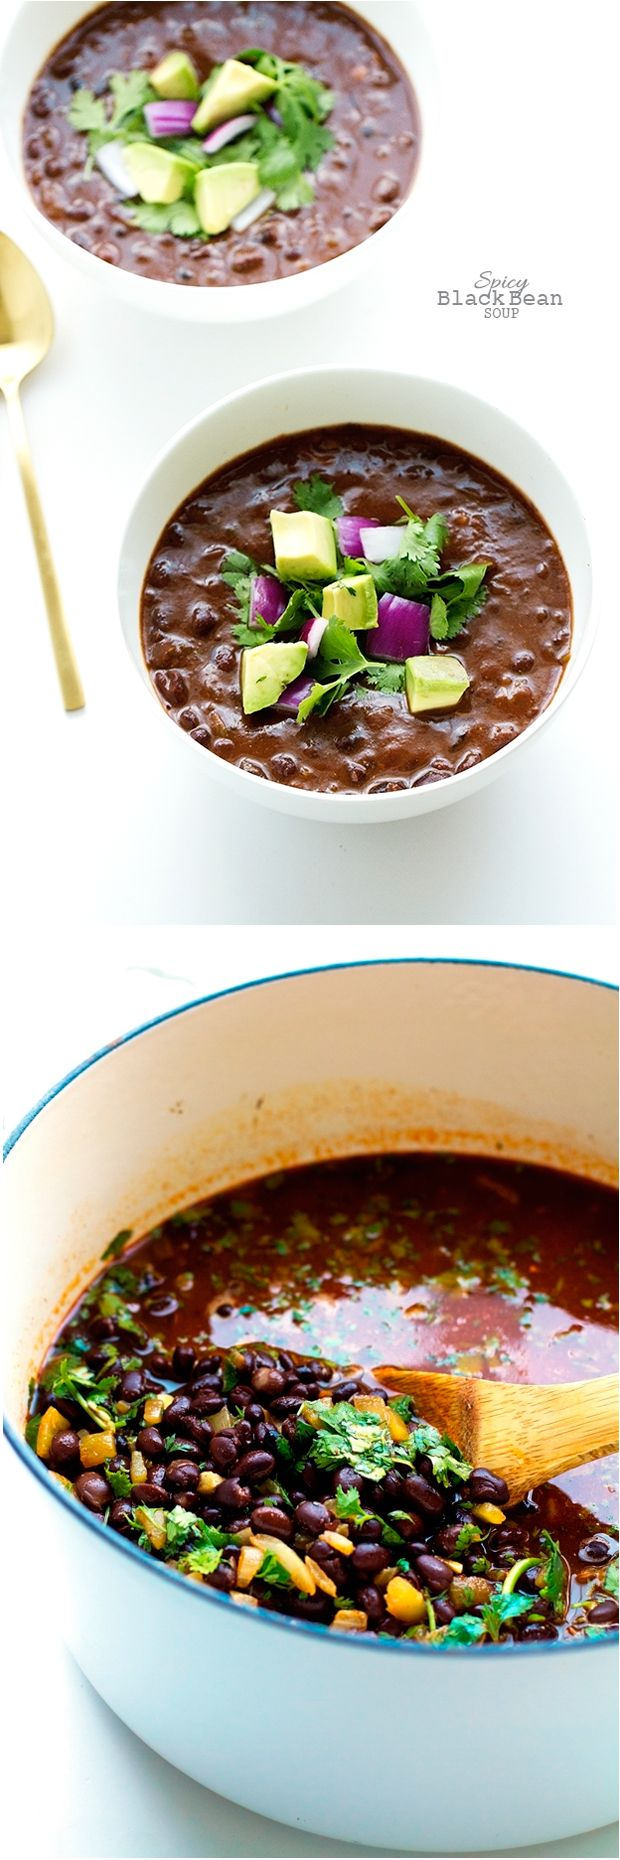 Spicy Black Bean Soup that's vegan and totally delicious! #blackbeansoup #spicyblackbeansoup #blackbeans | Littlespicejar.com